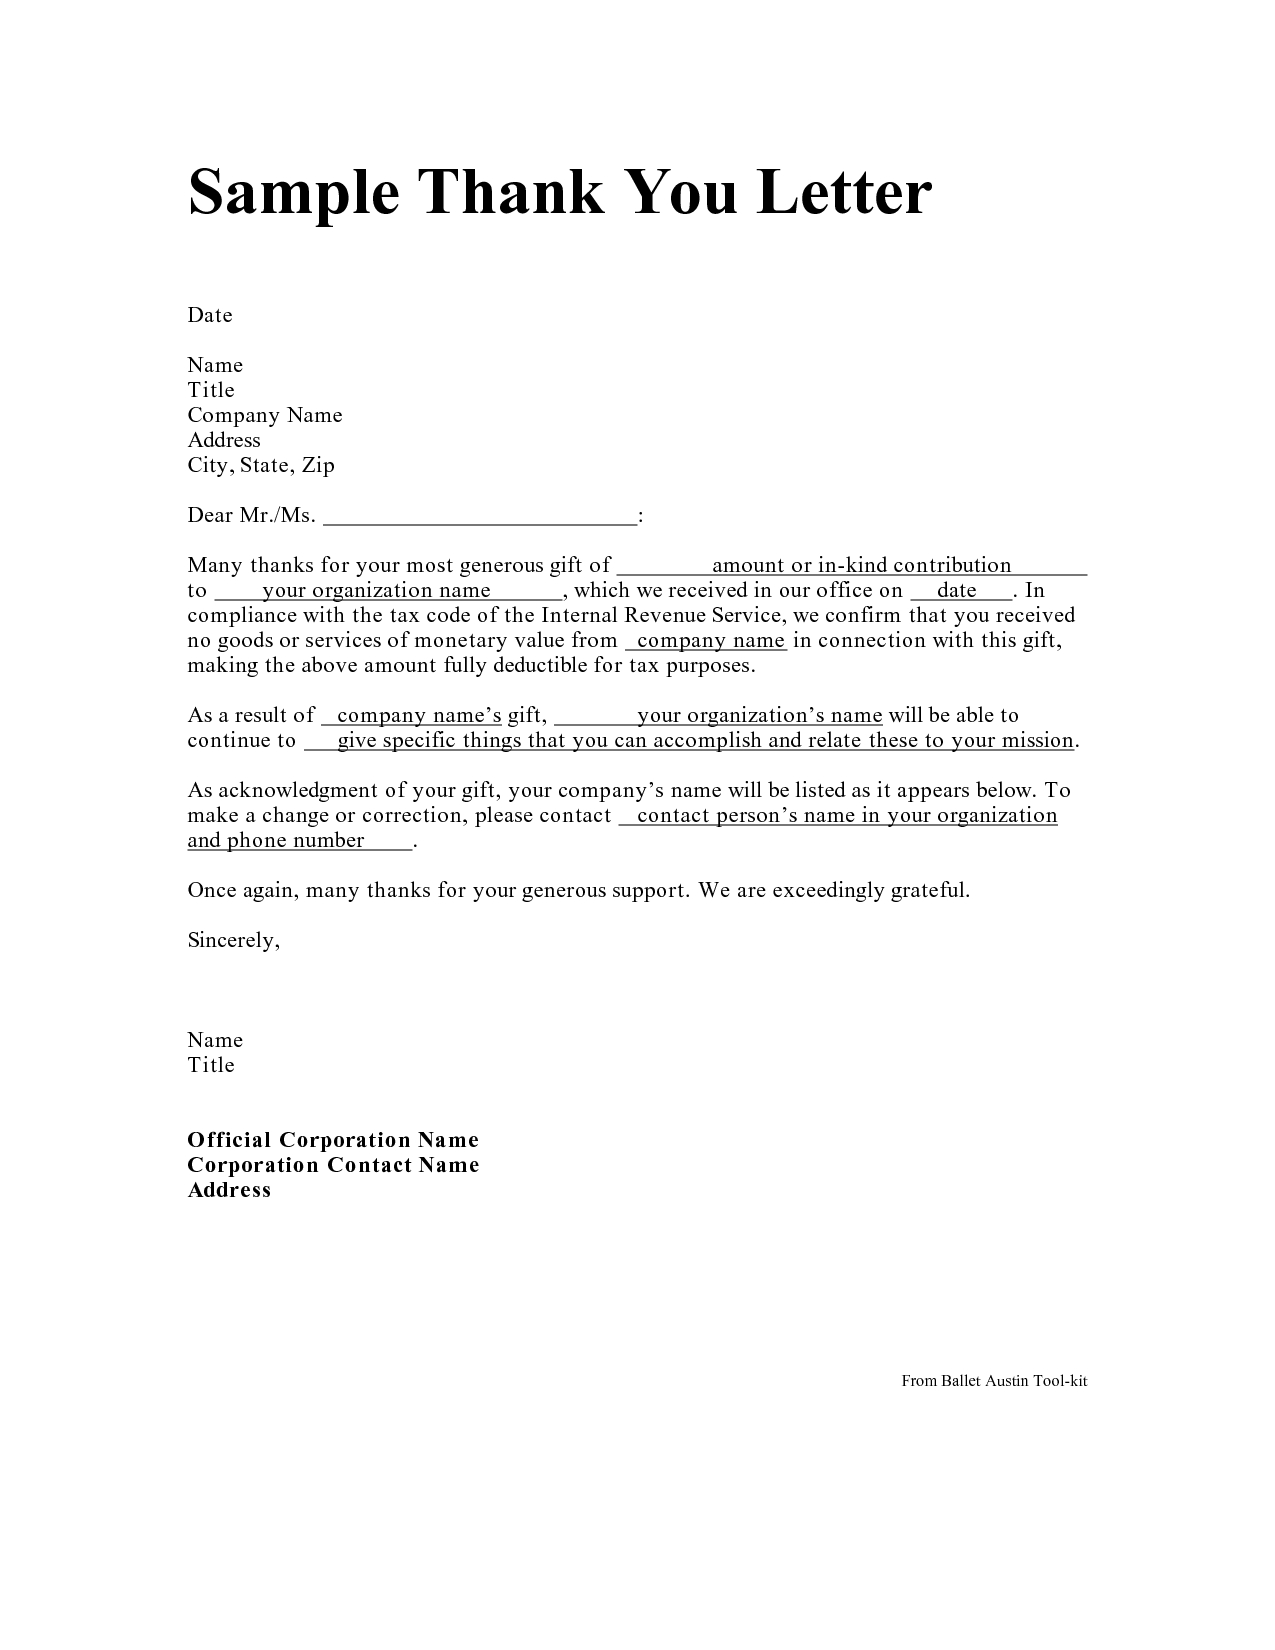 Judgement Proof Letter Template - Personal Thank You Letter Personal Thank You Letter Samples